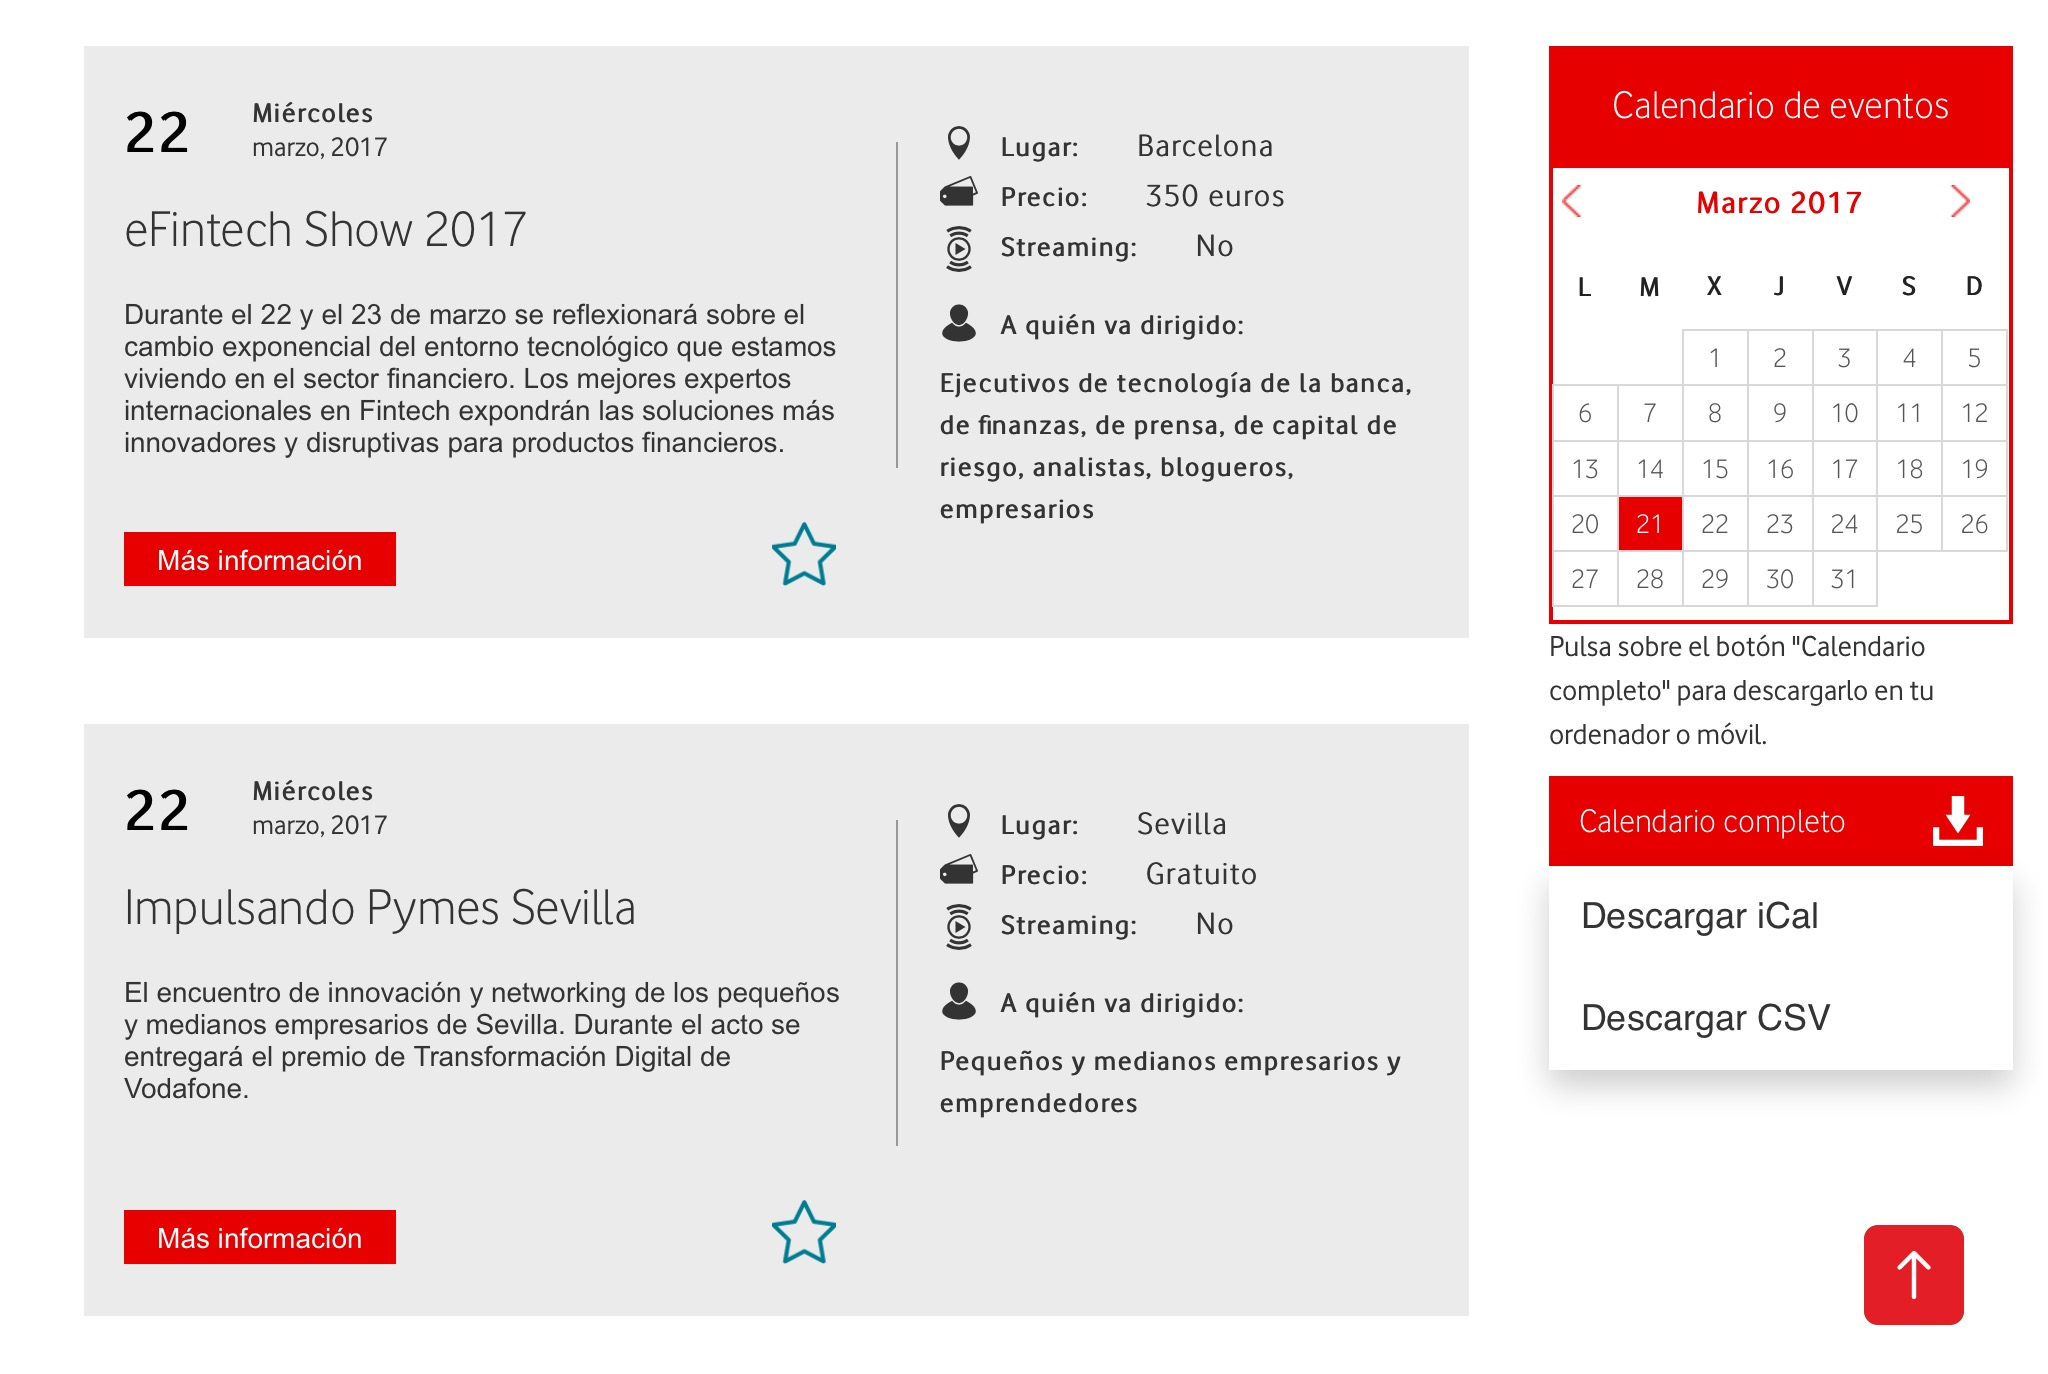 El calendario de eventos de Ideas para tu empresa